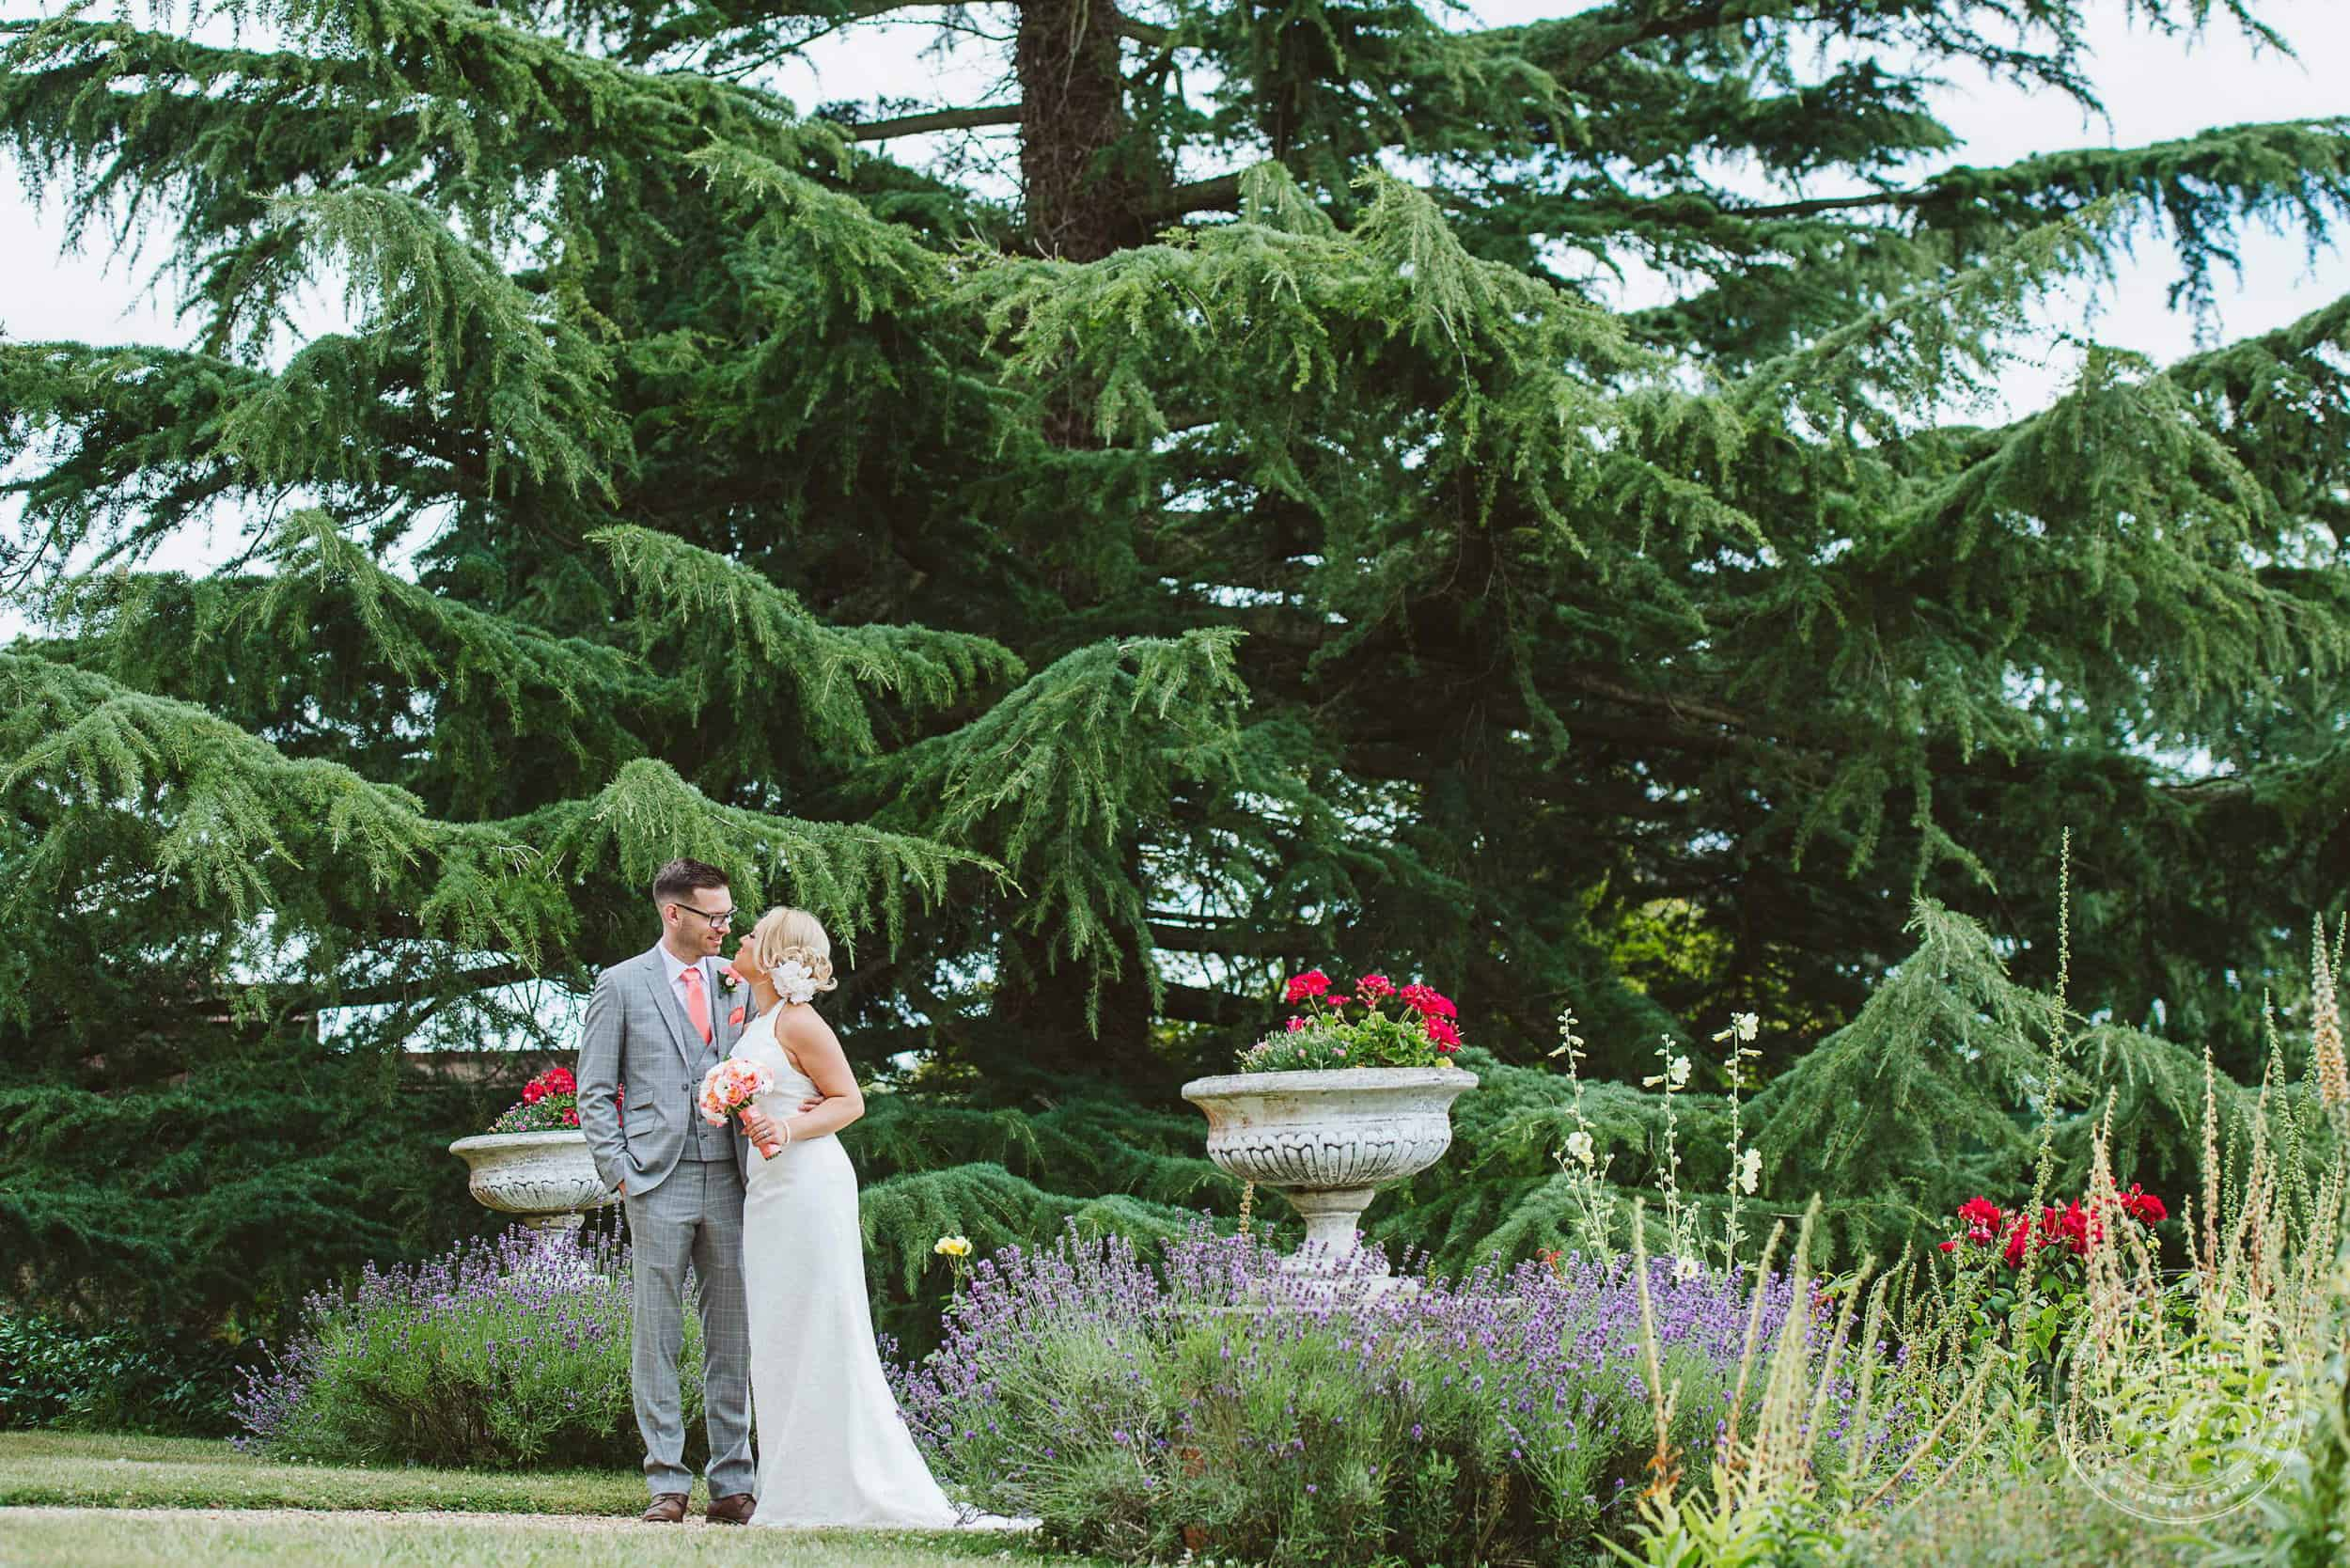 140717 Layer Marney Wedding Photography by Lavenham Photographic 085